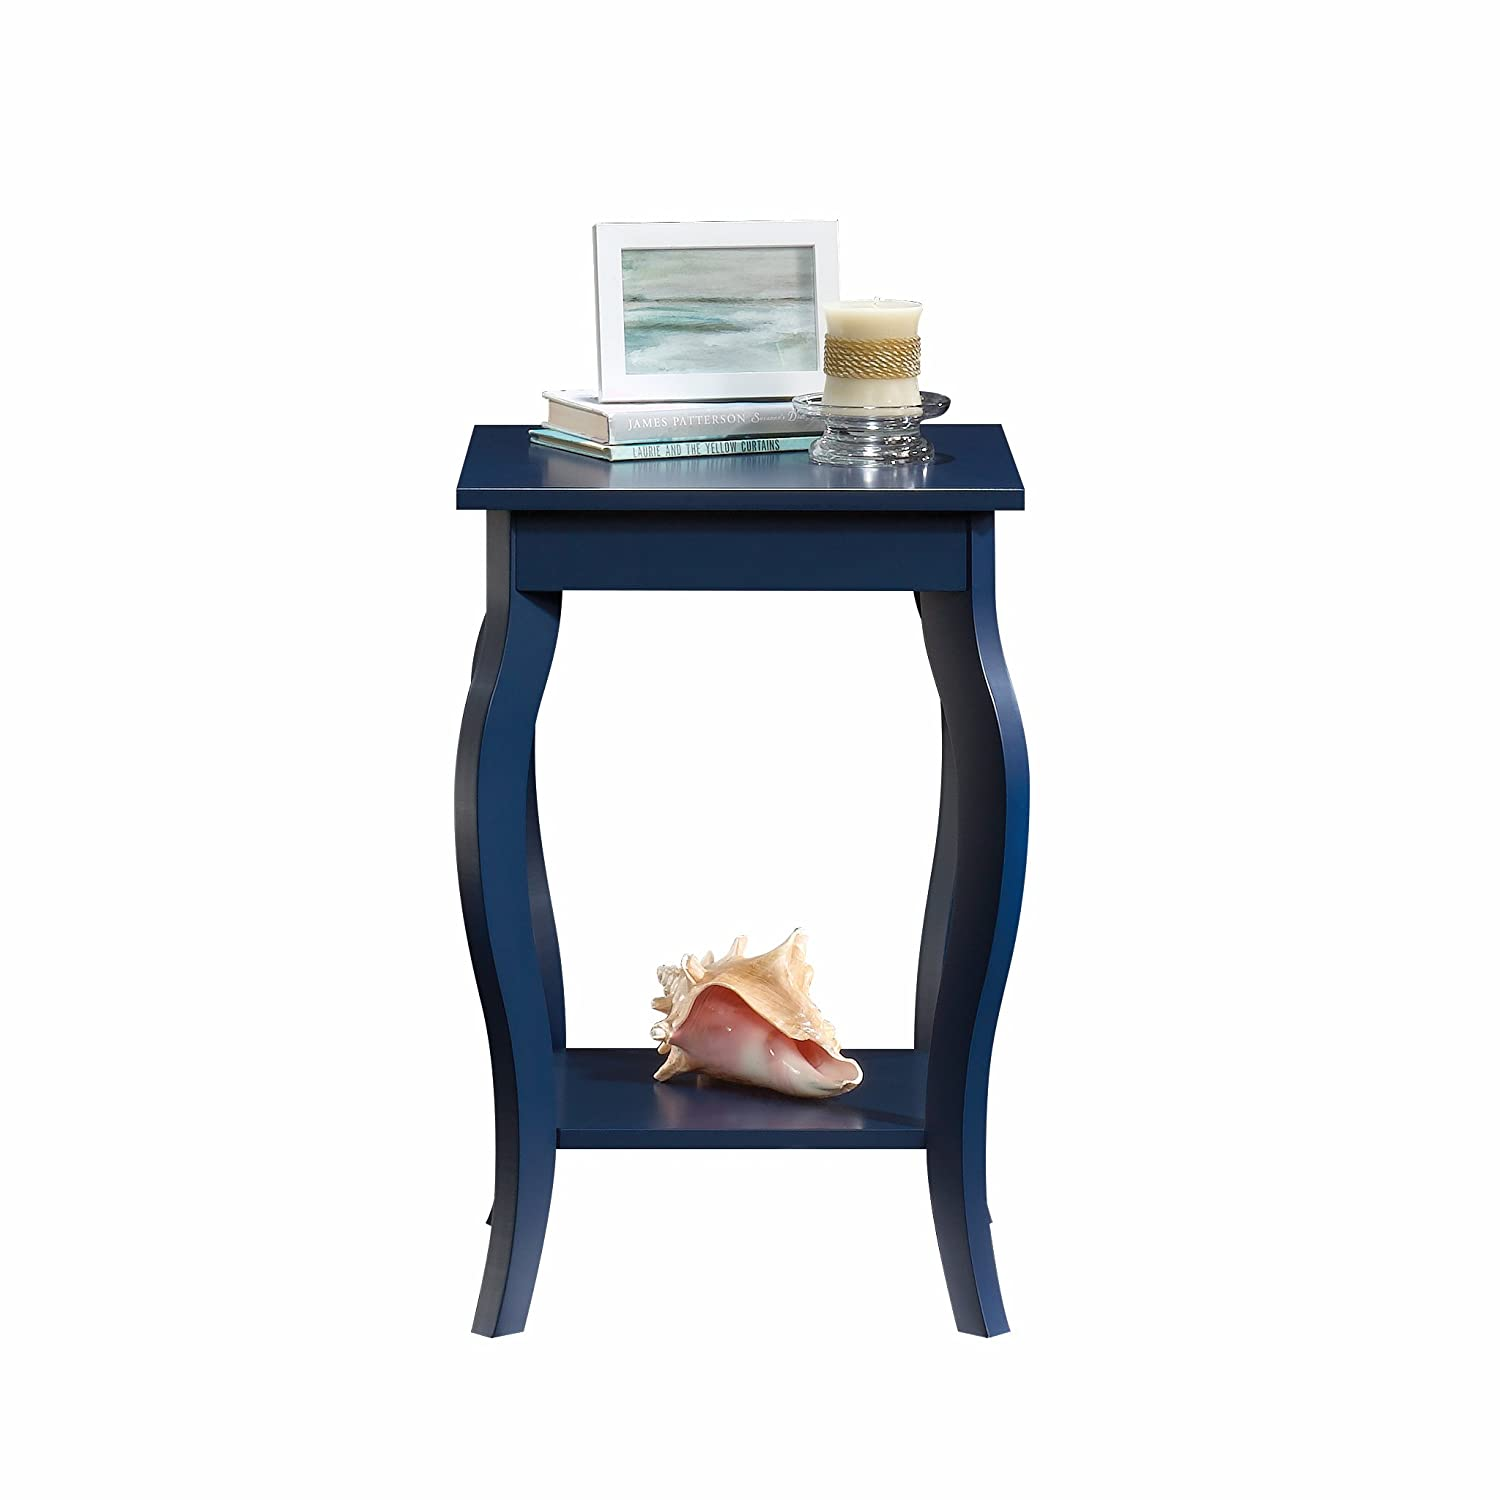 Sauder 420135 Harbor View Side Table, L 15.75 x W 15.75 x H 23.62 , Indigo Blue finish